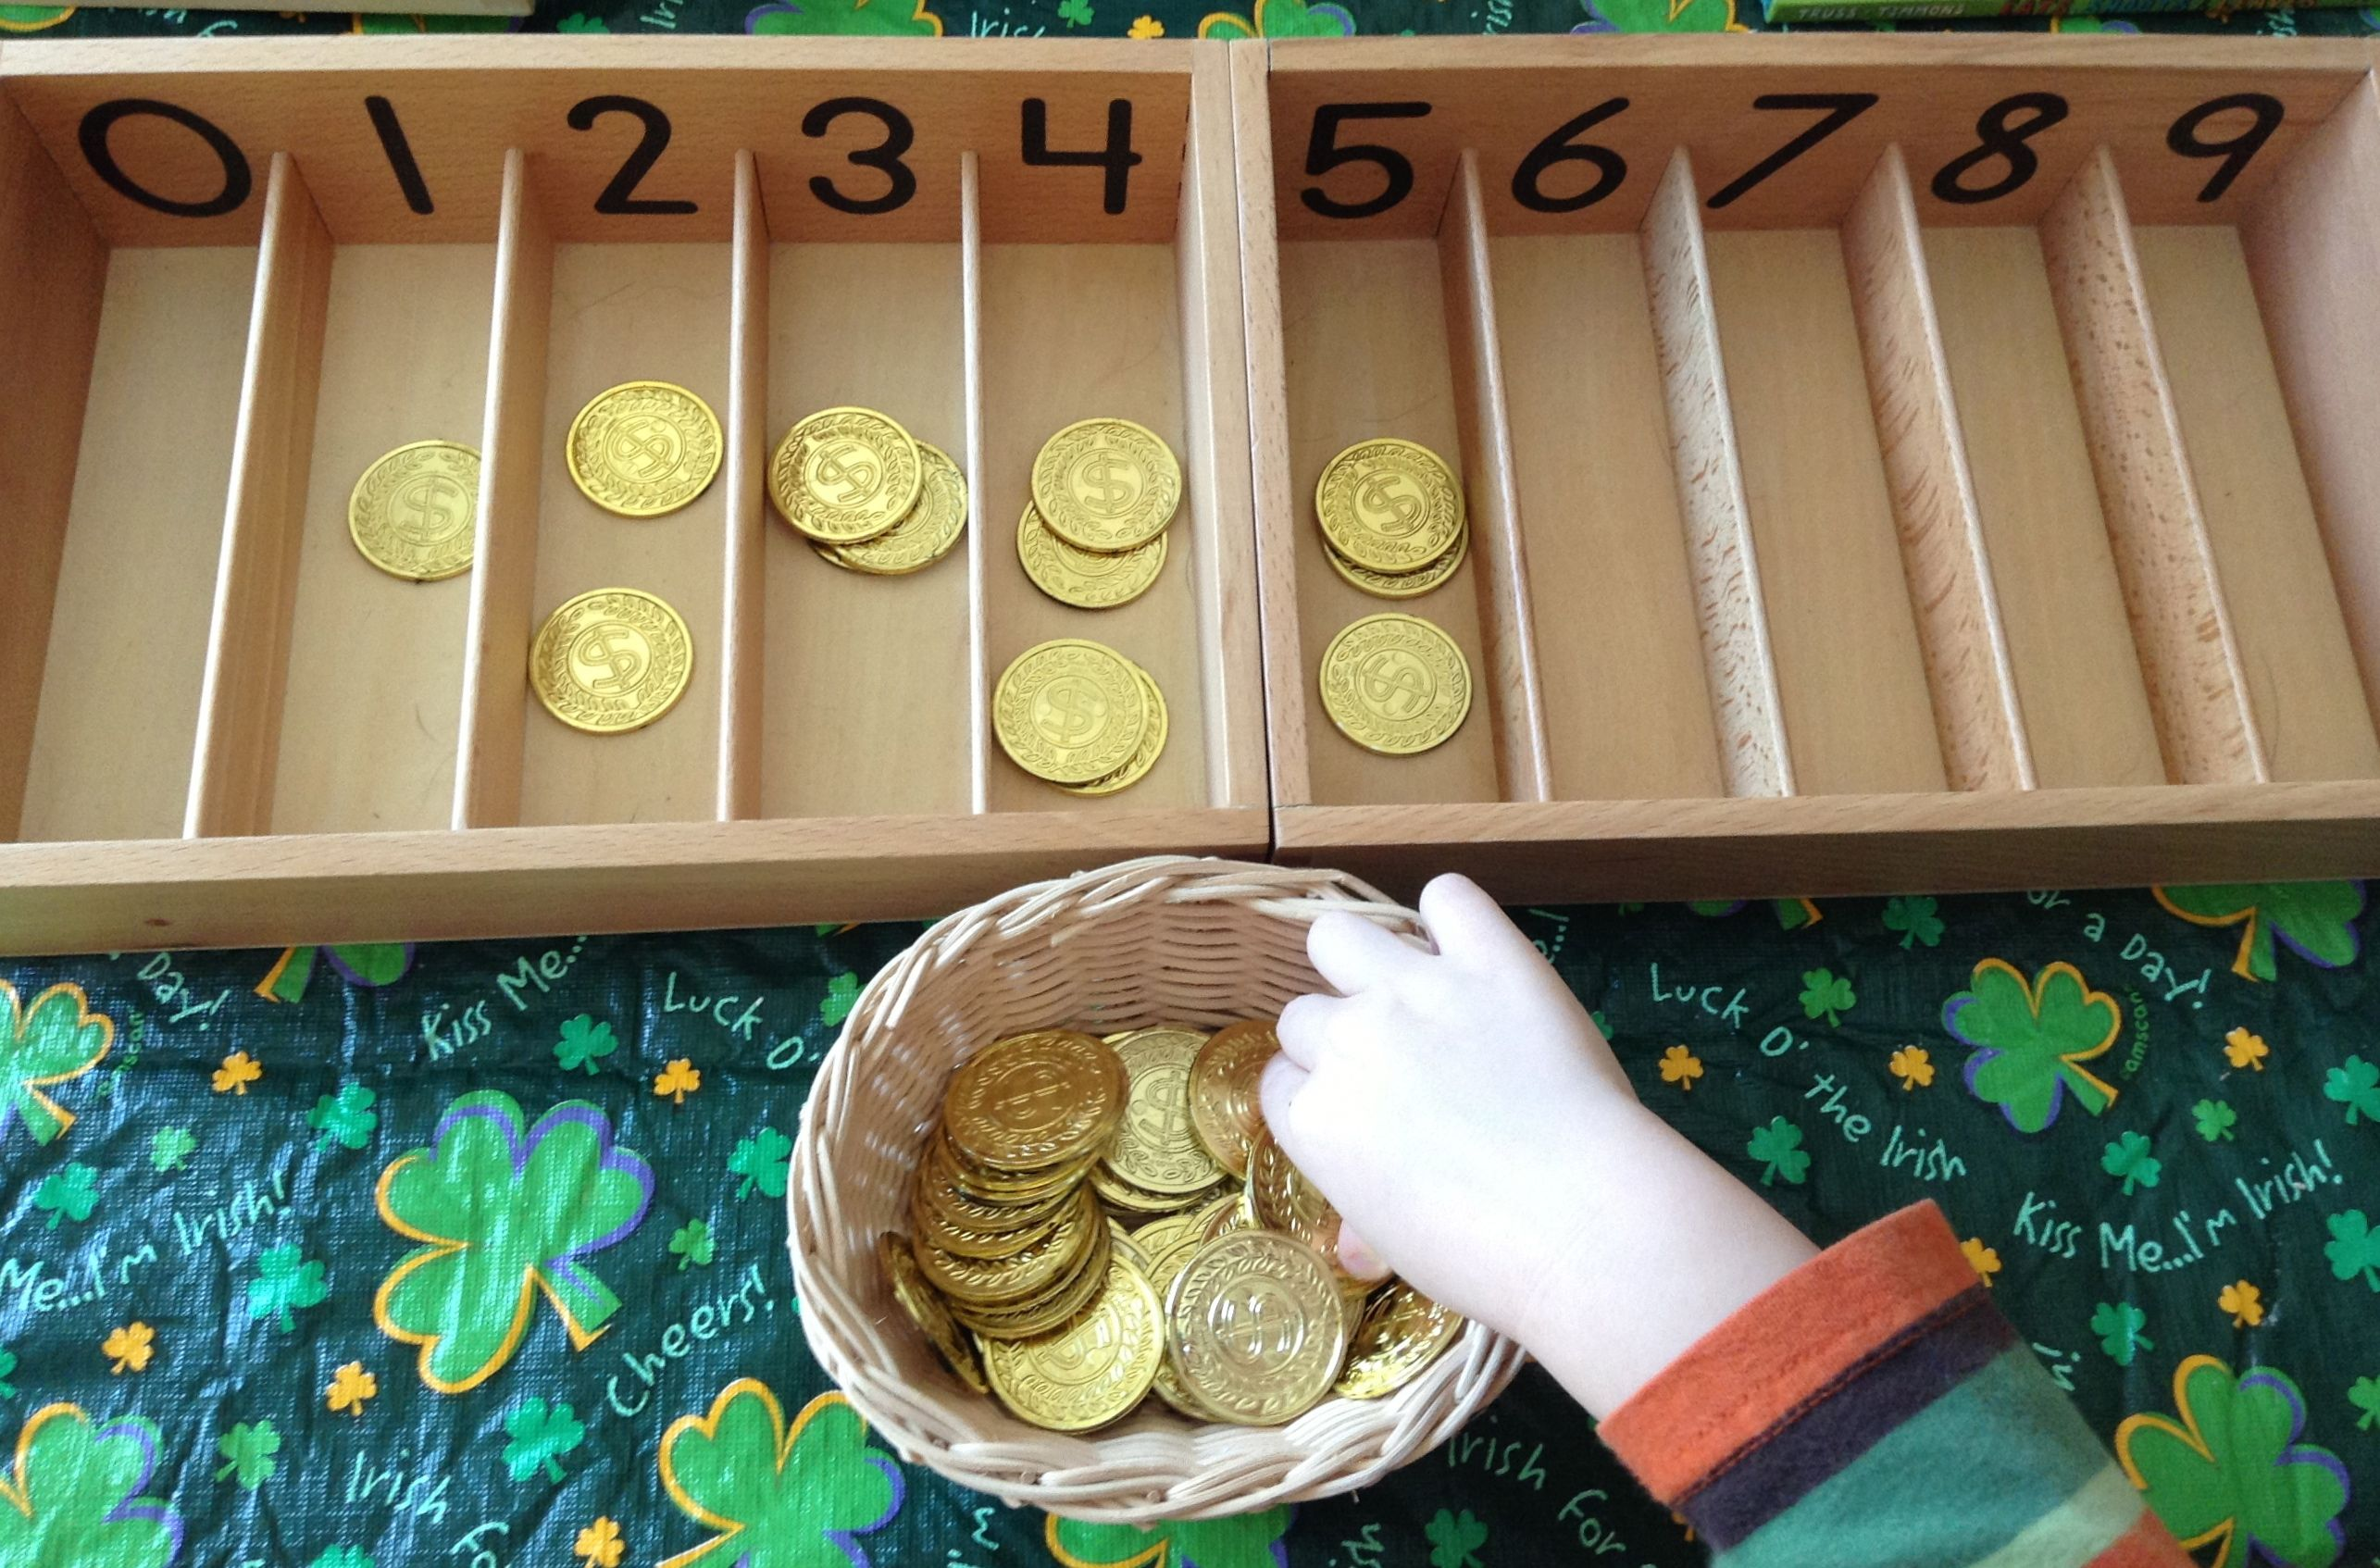 Feeling lucky? There's always room for a little holiday spirit when you're learning (I mean – having fun)! http://asperkids.com/leprechaun-gold/